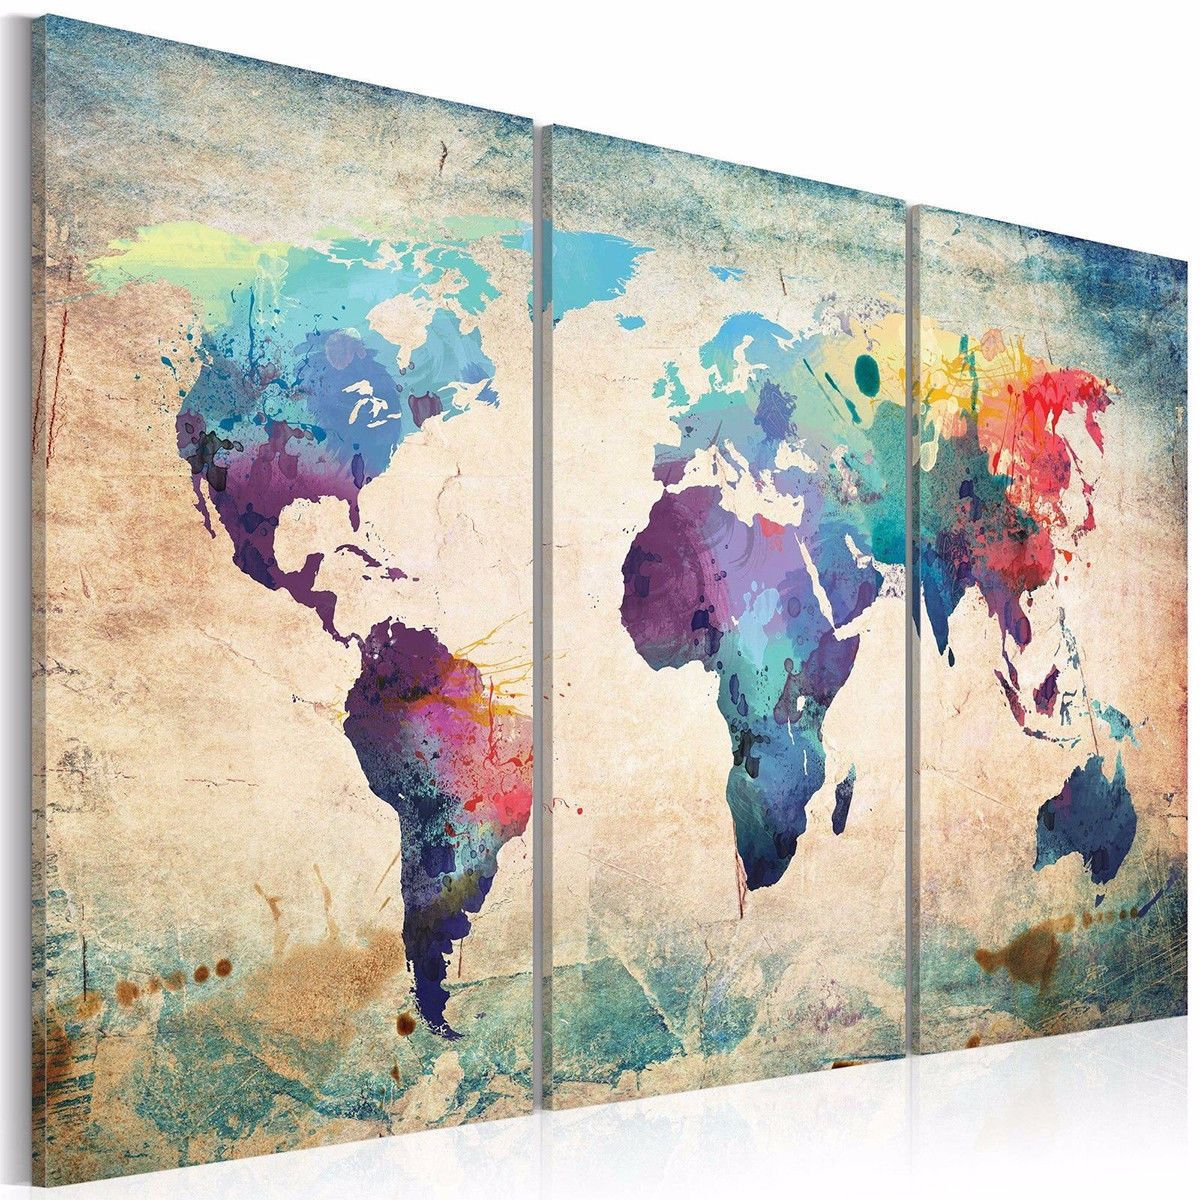 366 aud colorful art retro world map canvas prints painting 366 aud colorful art retro world map canvas prints painting unframe wall decor xmas gift gumiabroncs Choice Image